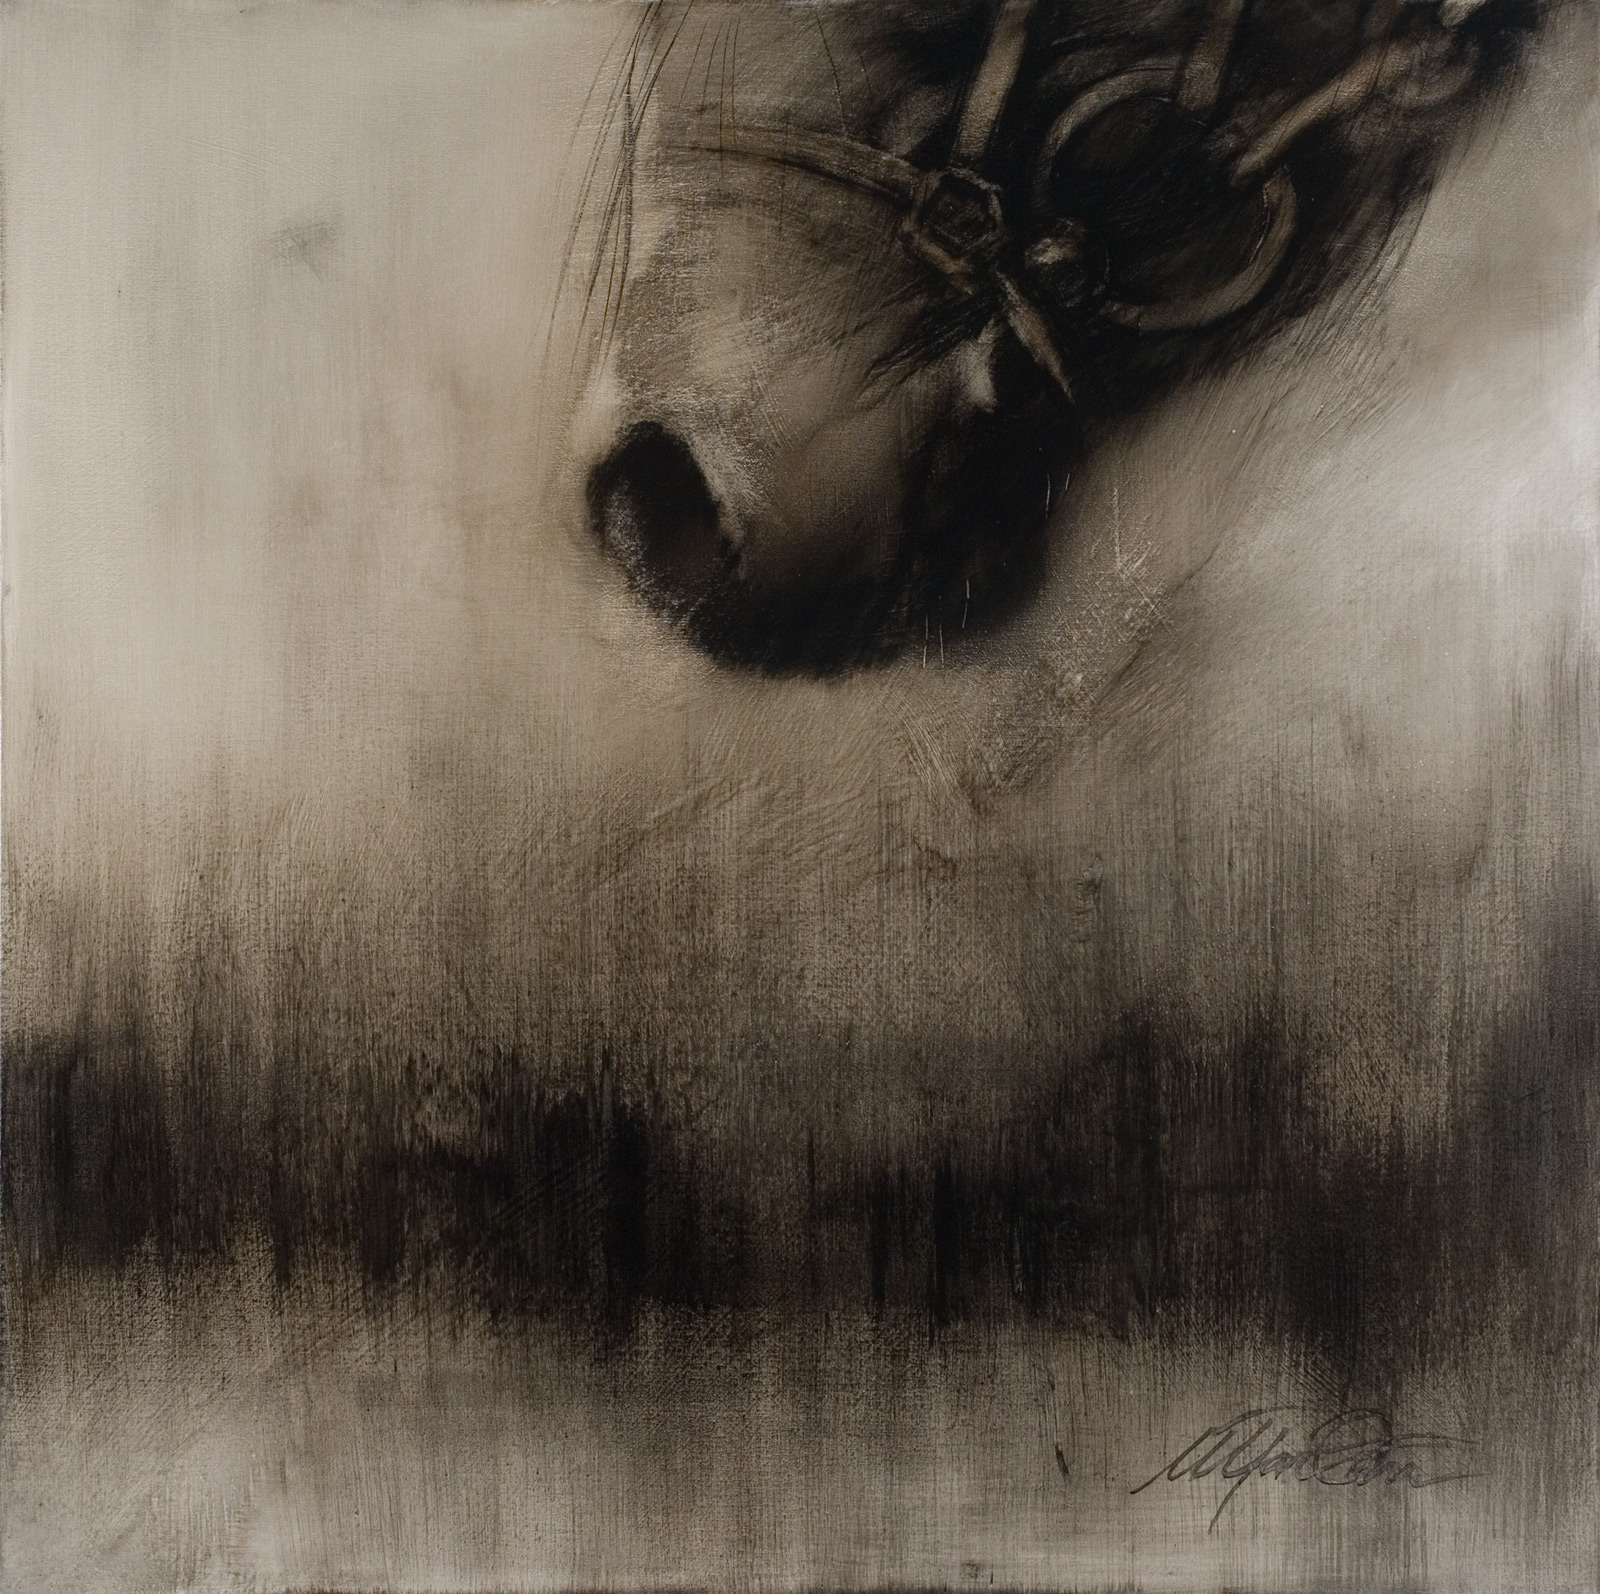 Oil on canvas 120x120 cm - private collection